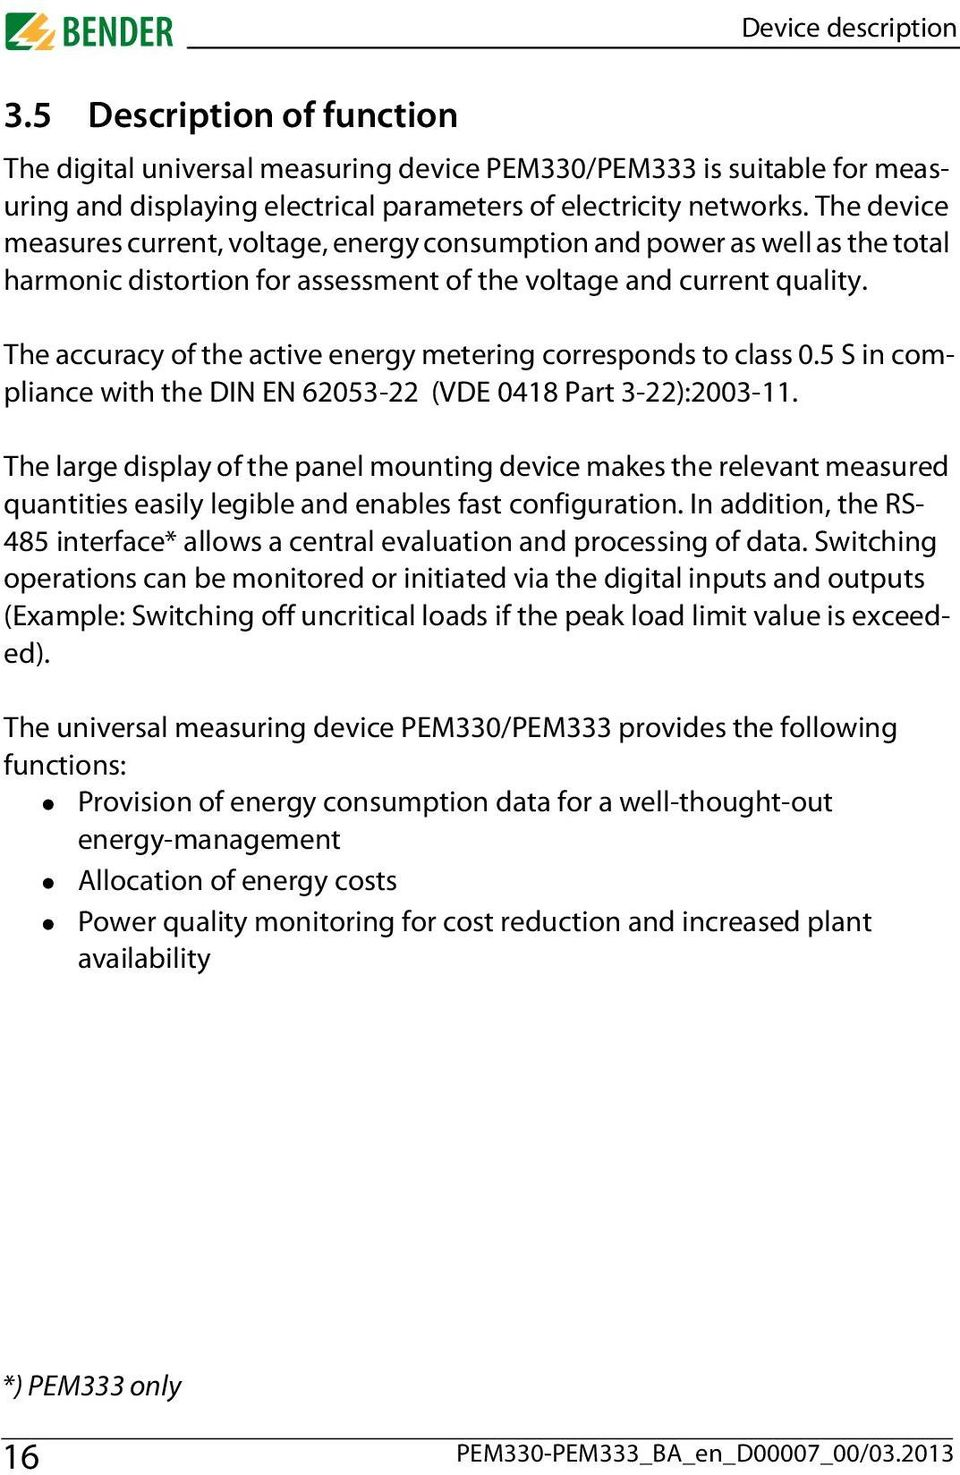 Operating Manual Pem330 Pem333 B Universal Measuring Device Which Displays The Cost Of Powering Monitored Load Accuracy Active Energy Metering Corresponds To Class 05 S In Compliance With